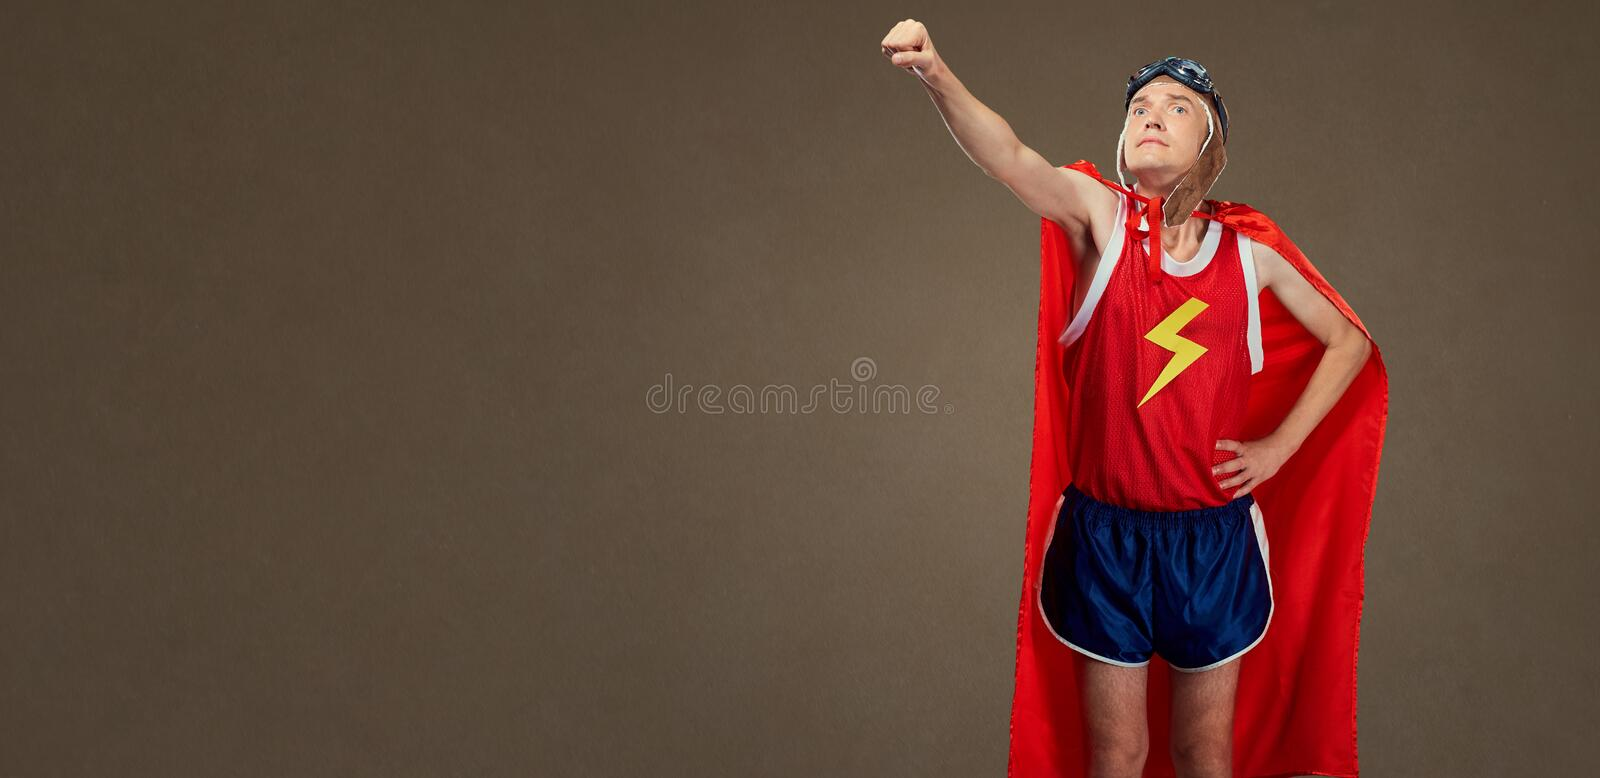 Funny funny cheerful man in a superhero costume in sports clothe. S. Humor in sport royalty free stock image